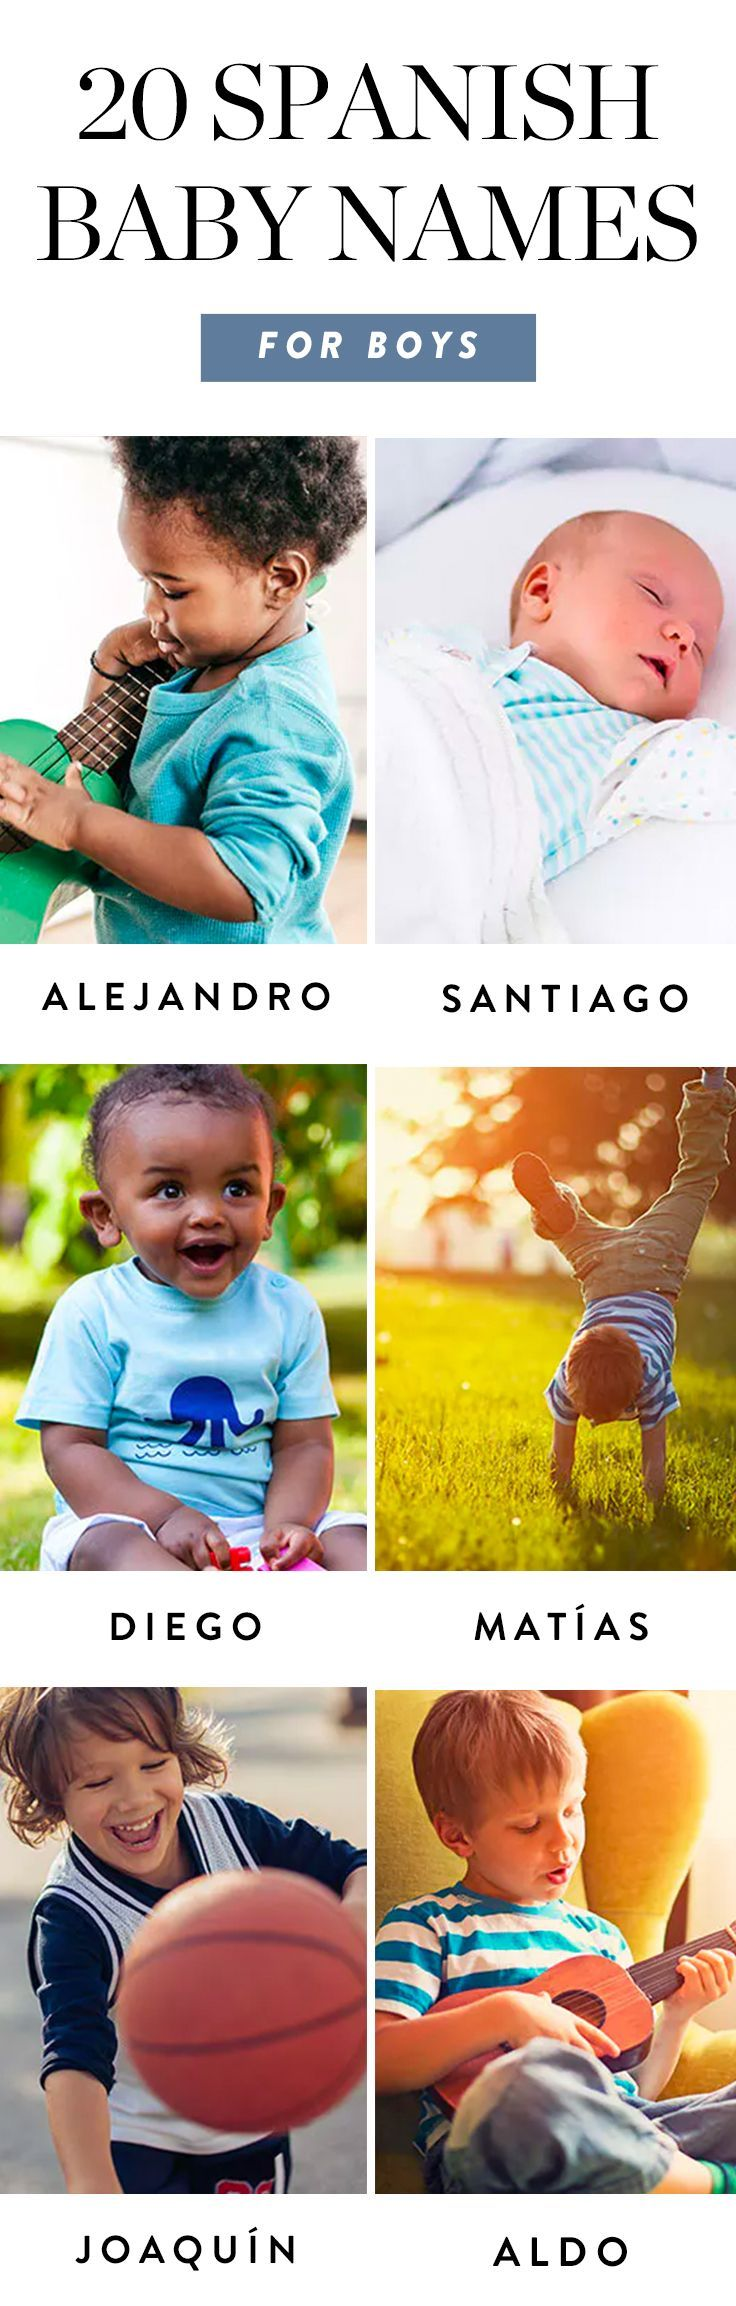 20 Spanish Baby Names For Boys That Are Muy Bonito